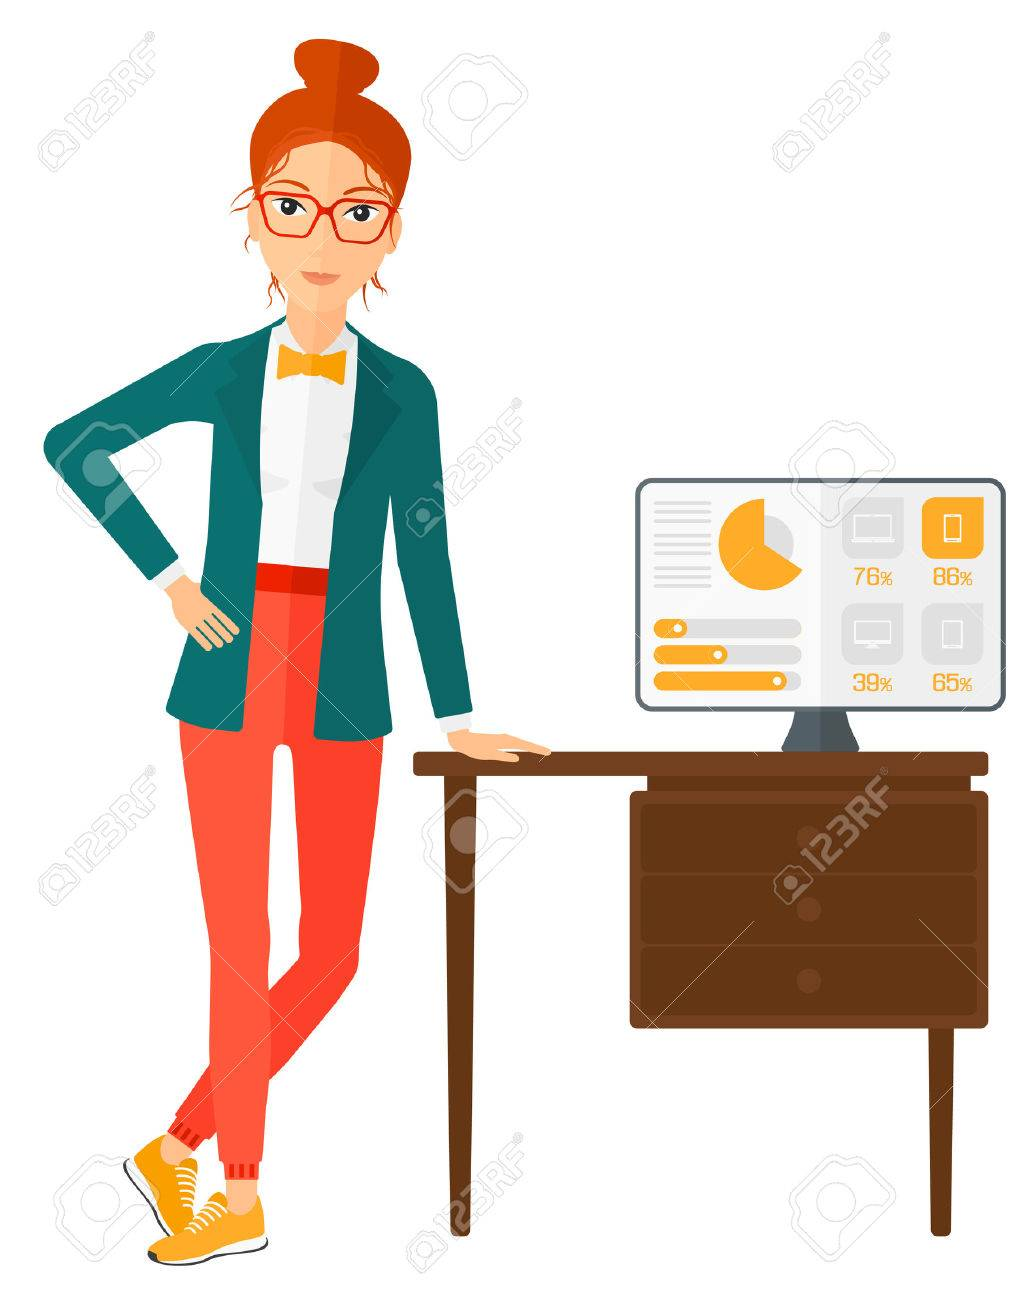 A woman leaning on a table with a computer monitor in office vector flat design illustration isolated on white background. - 50784502